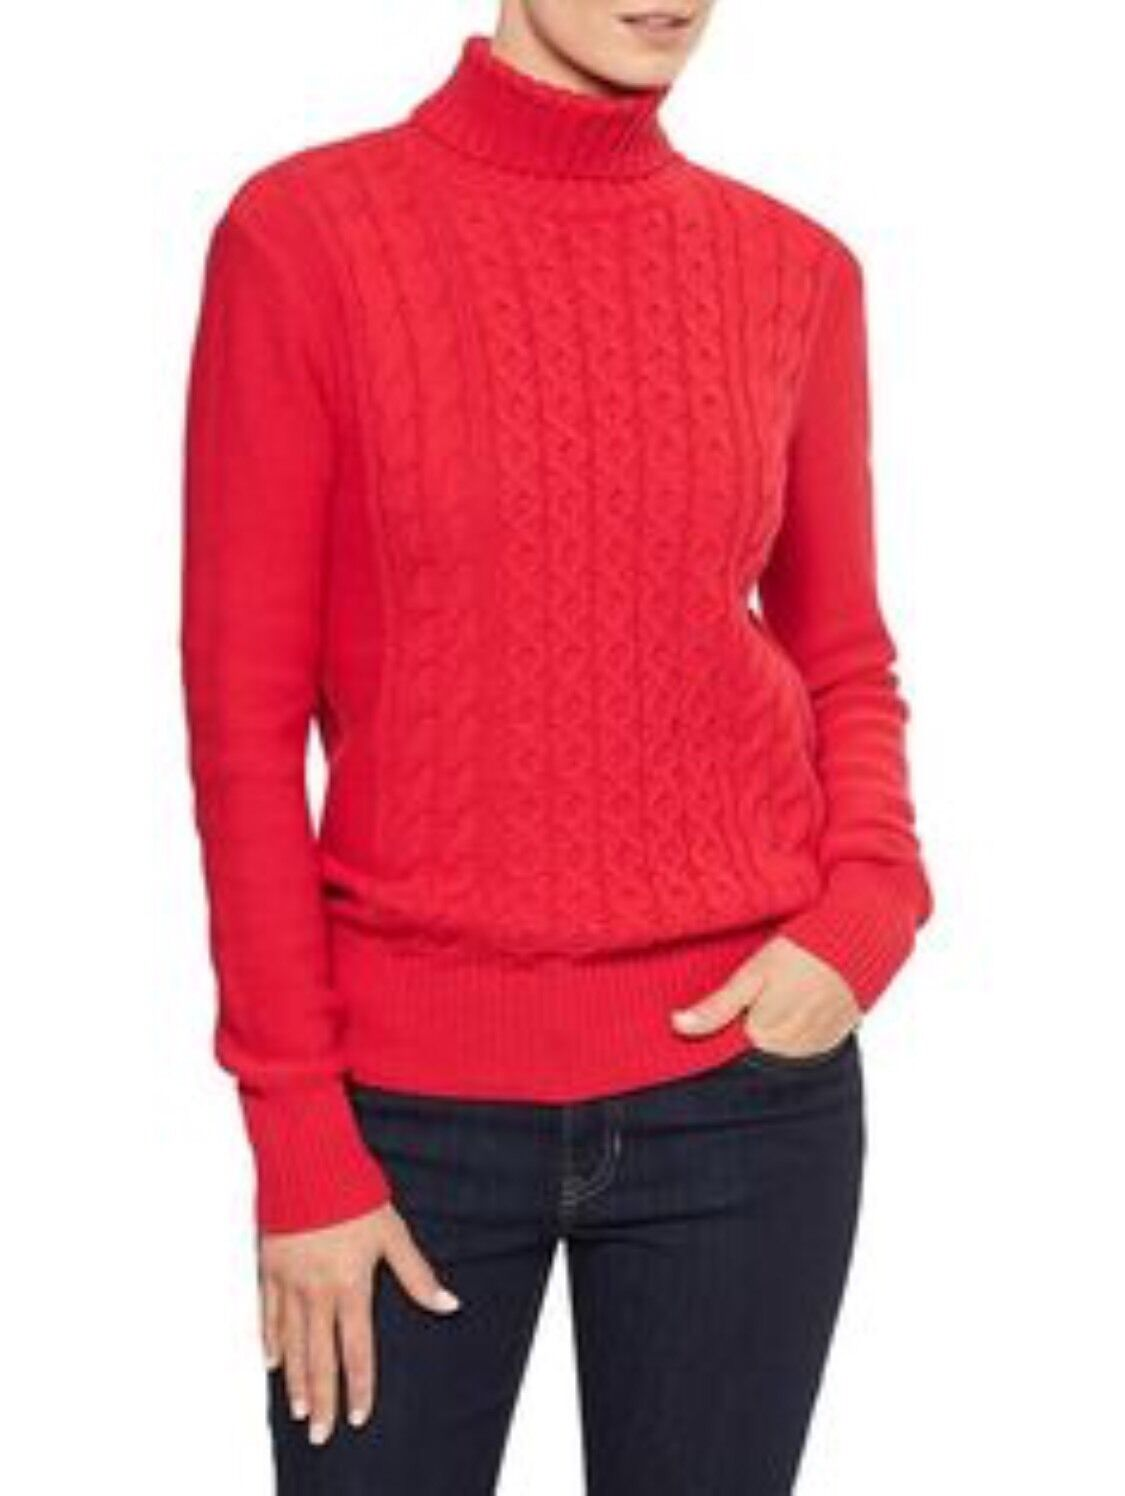 NWT Women's GAP Cable Knit Turtleneck Sweater, Long Sleeves, RED ...